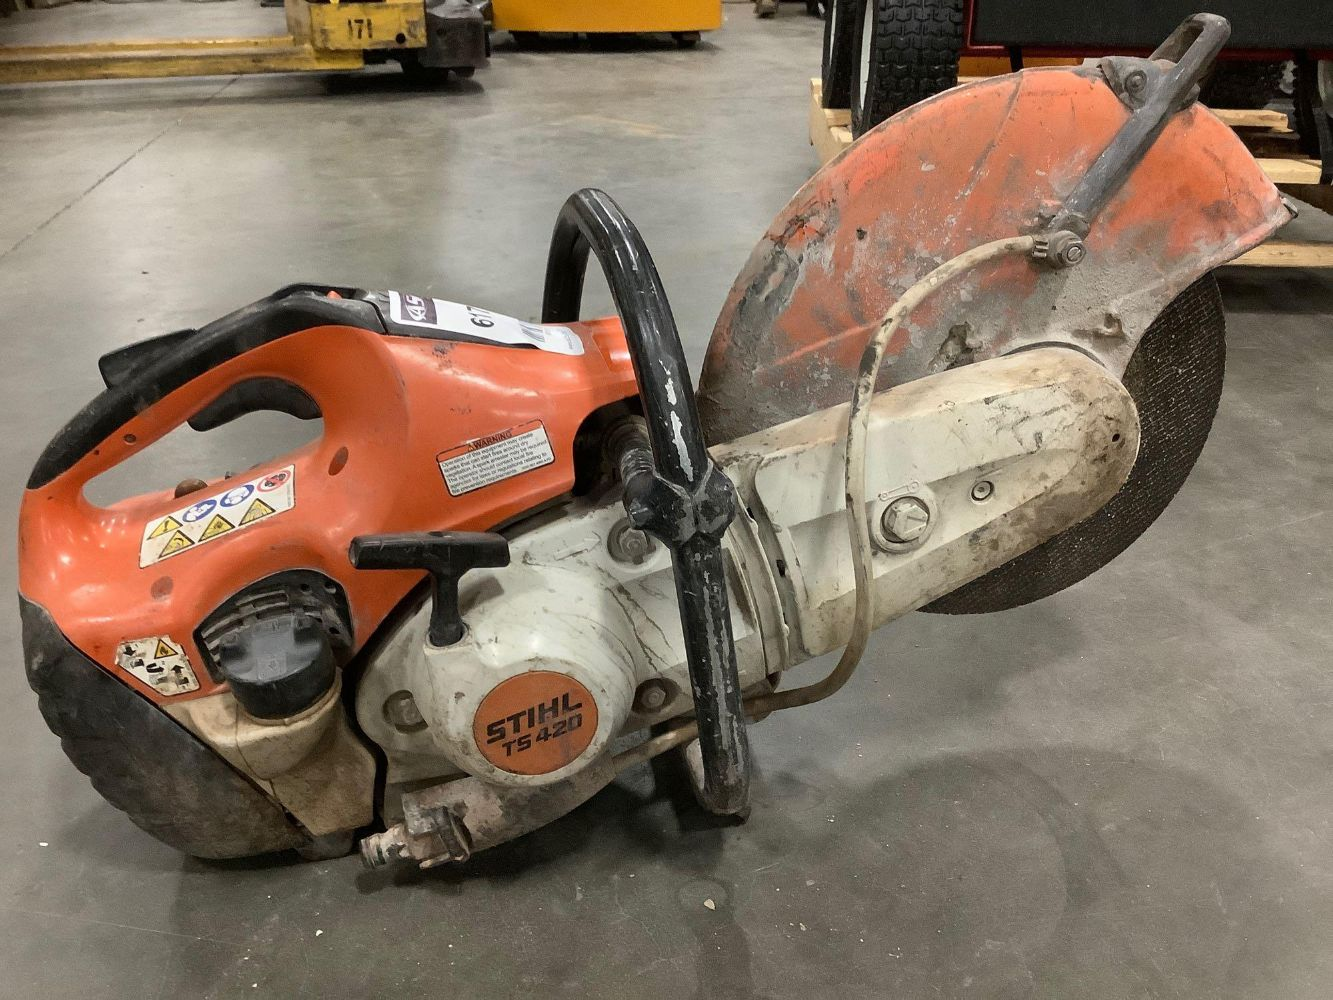 Online Auction Of Industrial & Commercial Equipment - Late Model Equipment Auction